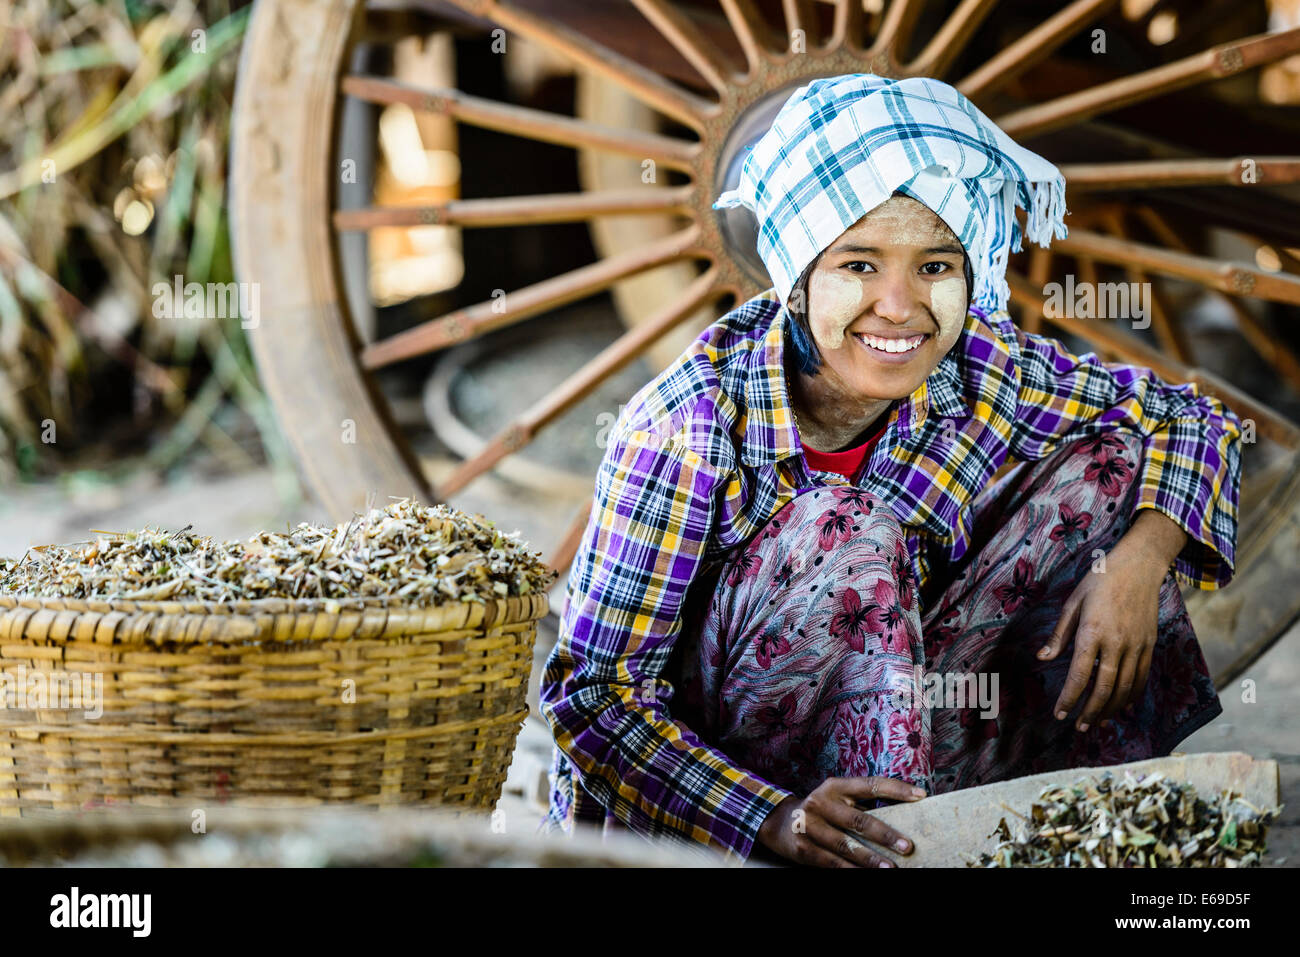 Asian girl selling herbs in market - Stock Image